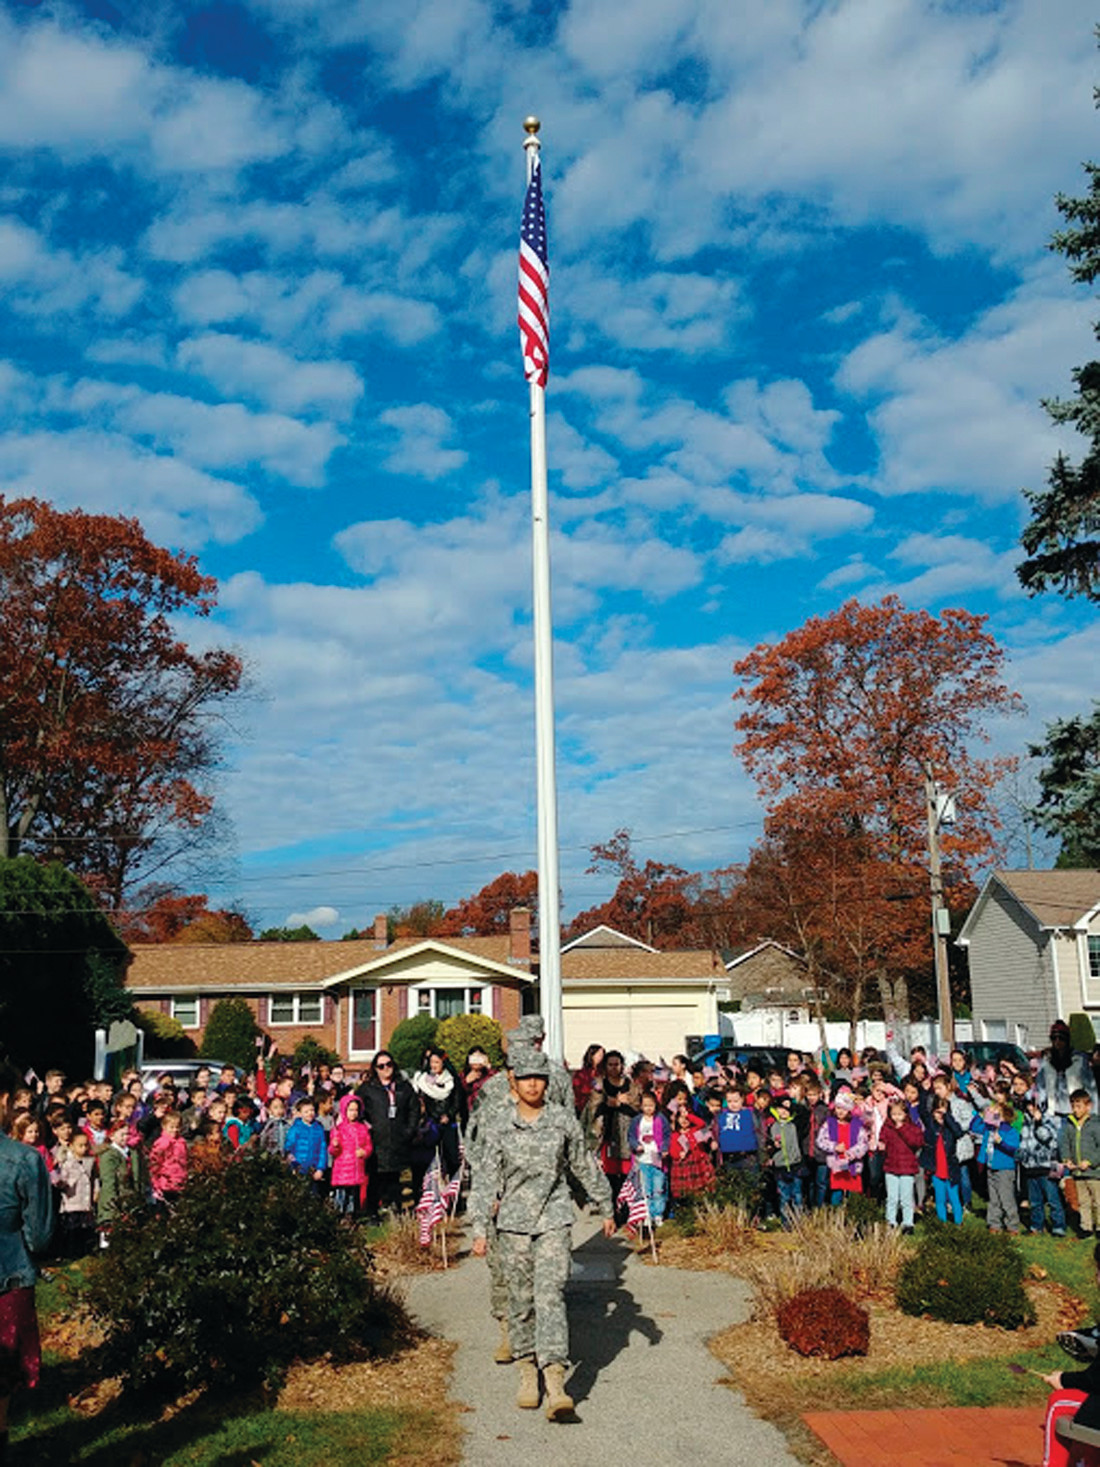 A JOB WELL DONE: The Cranston East JROTC students march out of the ceremony after having raised the new flag at Glen Hills Elementary School in honor of Veterans Day.